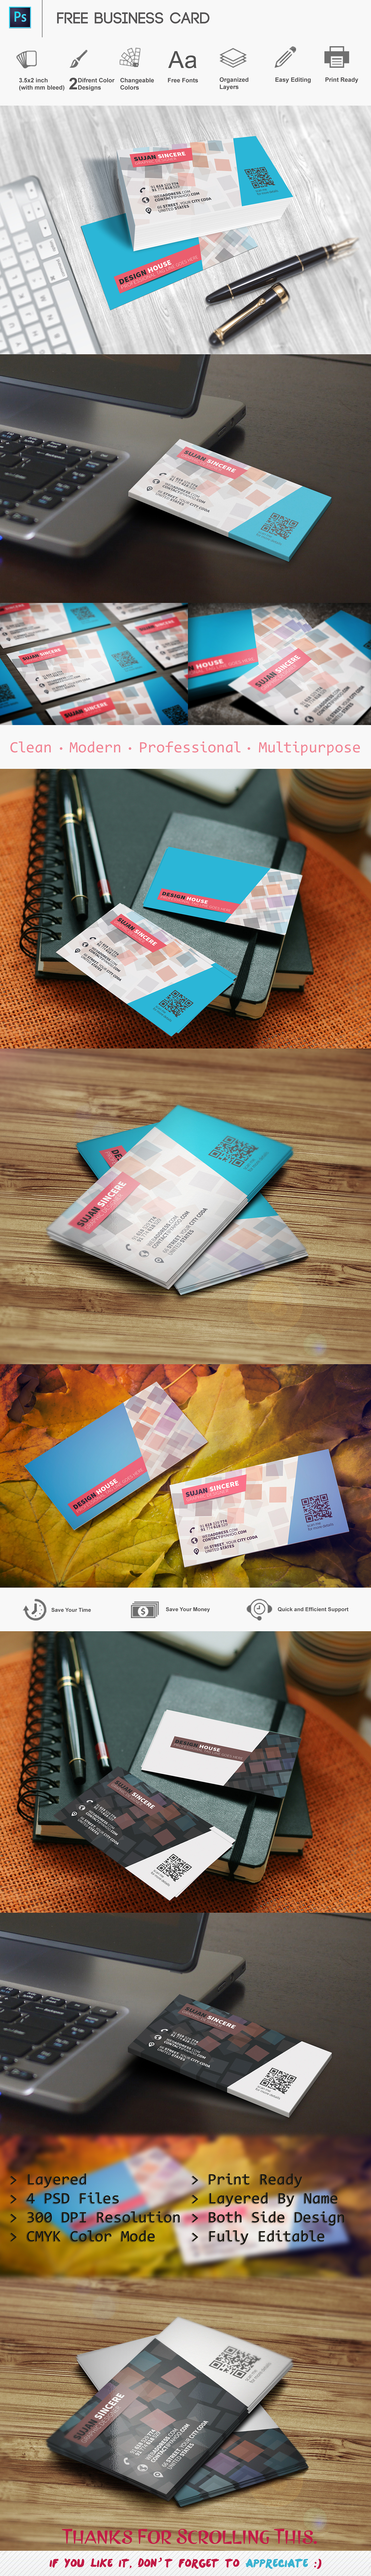 Free Colorful Business Card Template on Behance = More at